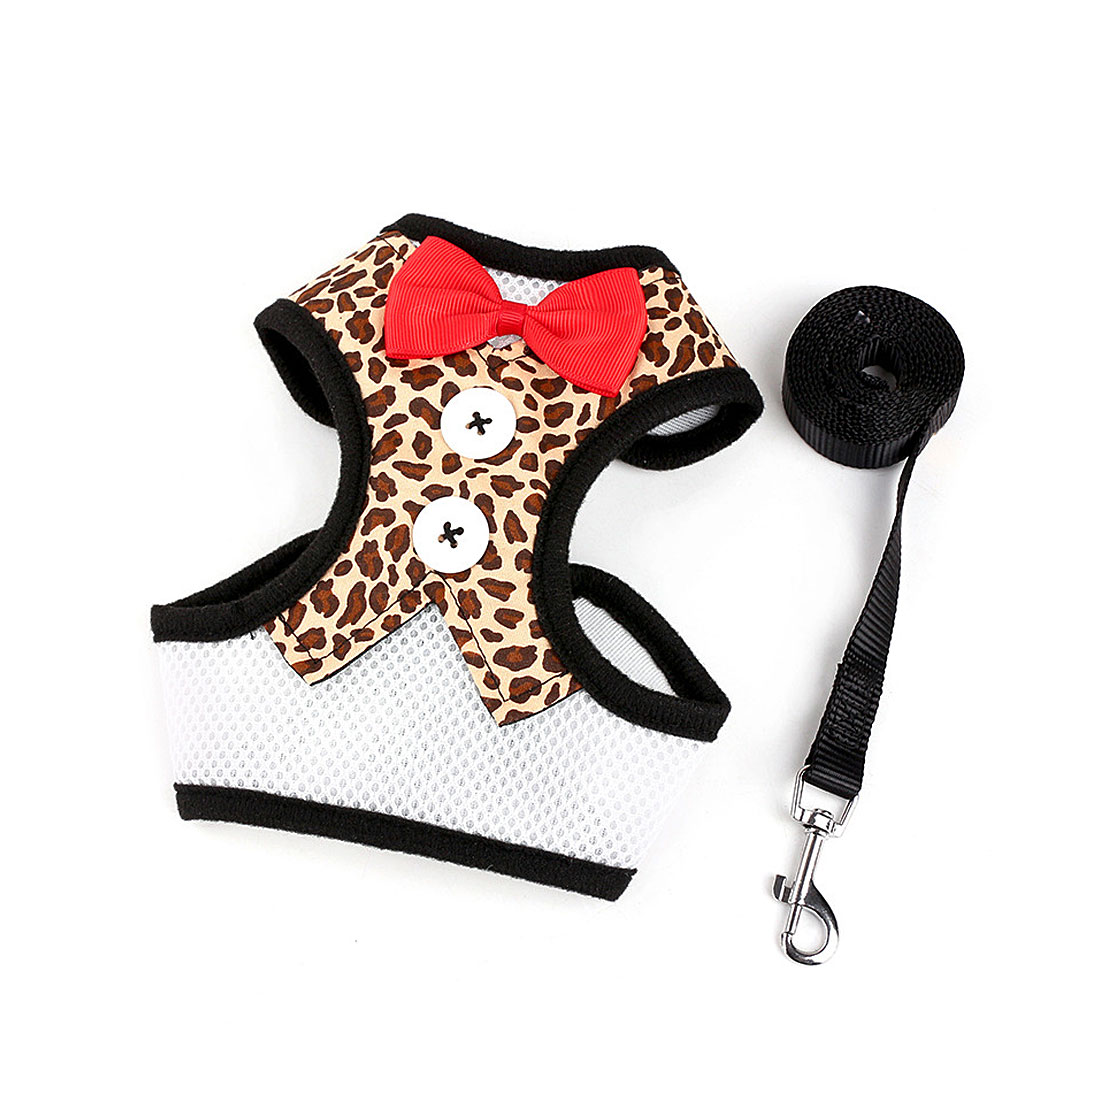 Adjustable Padded Small Dog Harness Breathable Dog Vest Bowtie Gentleman Suit Leopard M